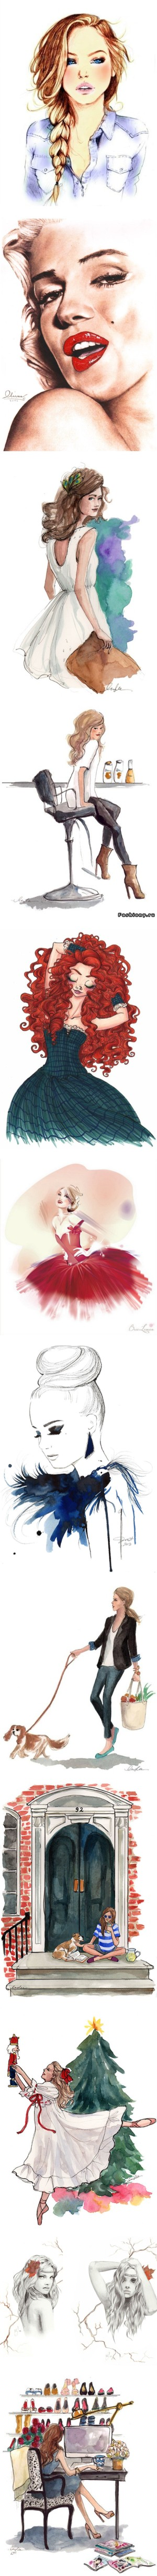 """"""".drawings of ladies. Pt 2"""" by lora2388 on Polyvore"""